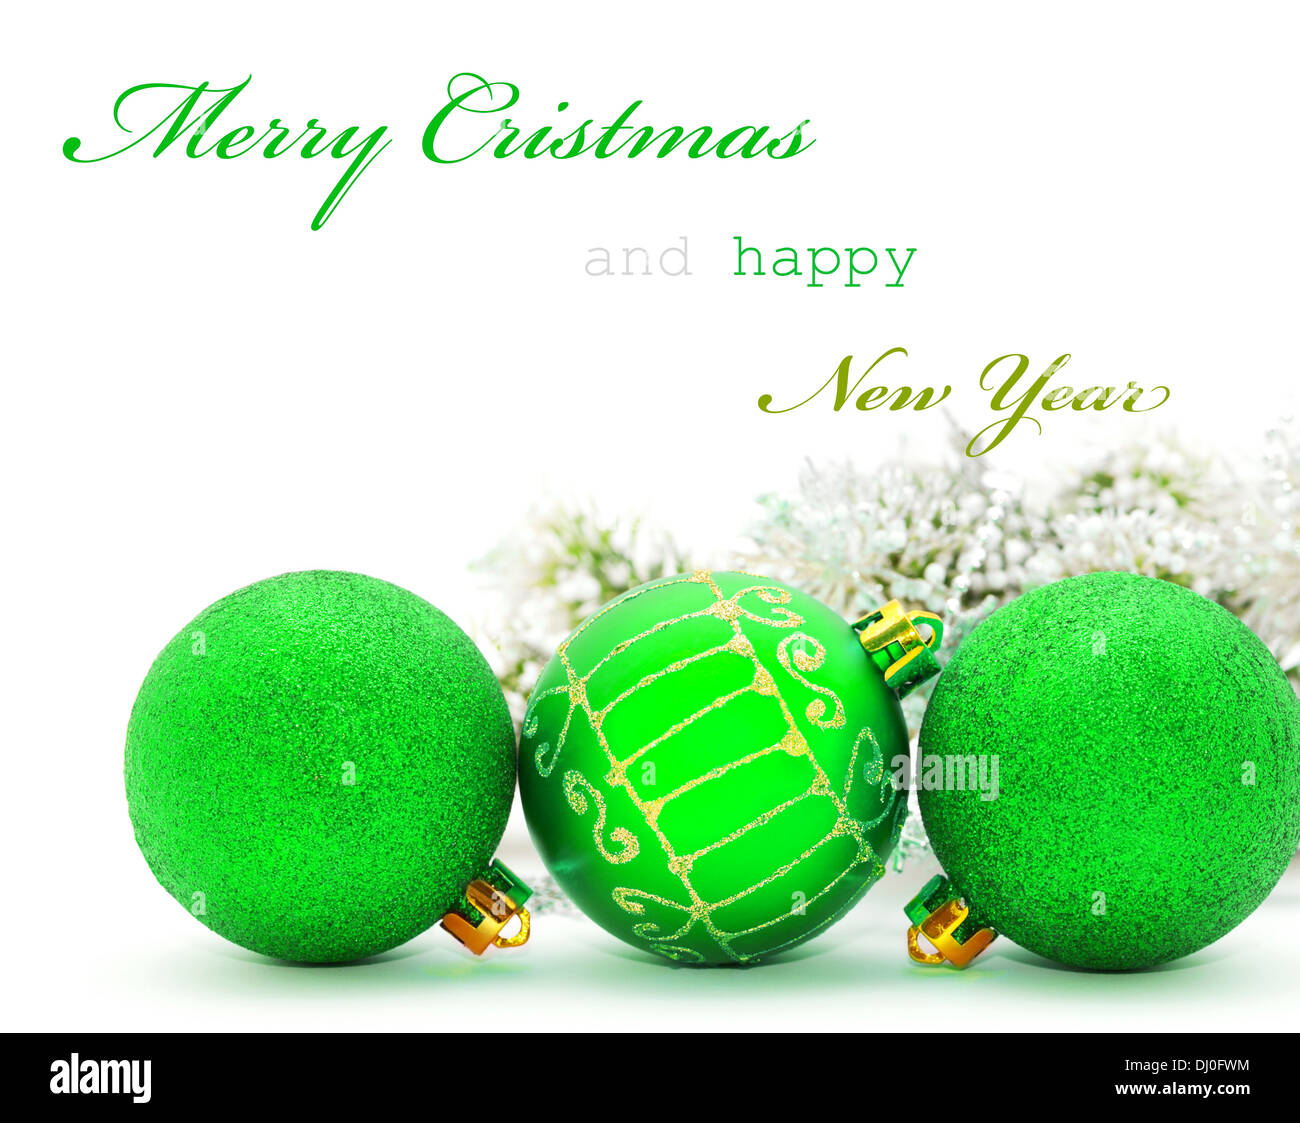 Christmas greeting card sample text stock photos christmas christmas greeting card with green baubles and sample text stock image m4hsunfo